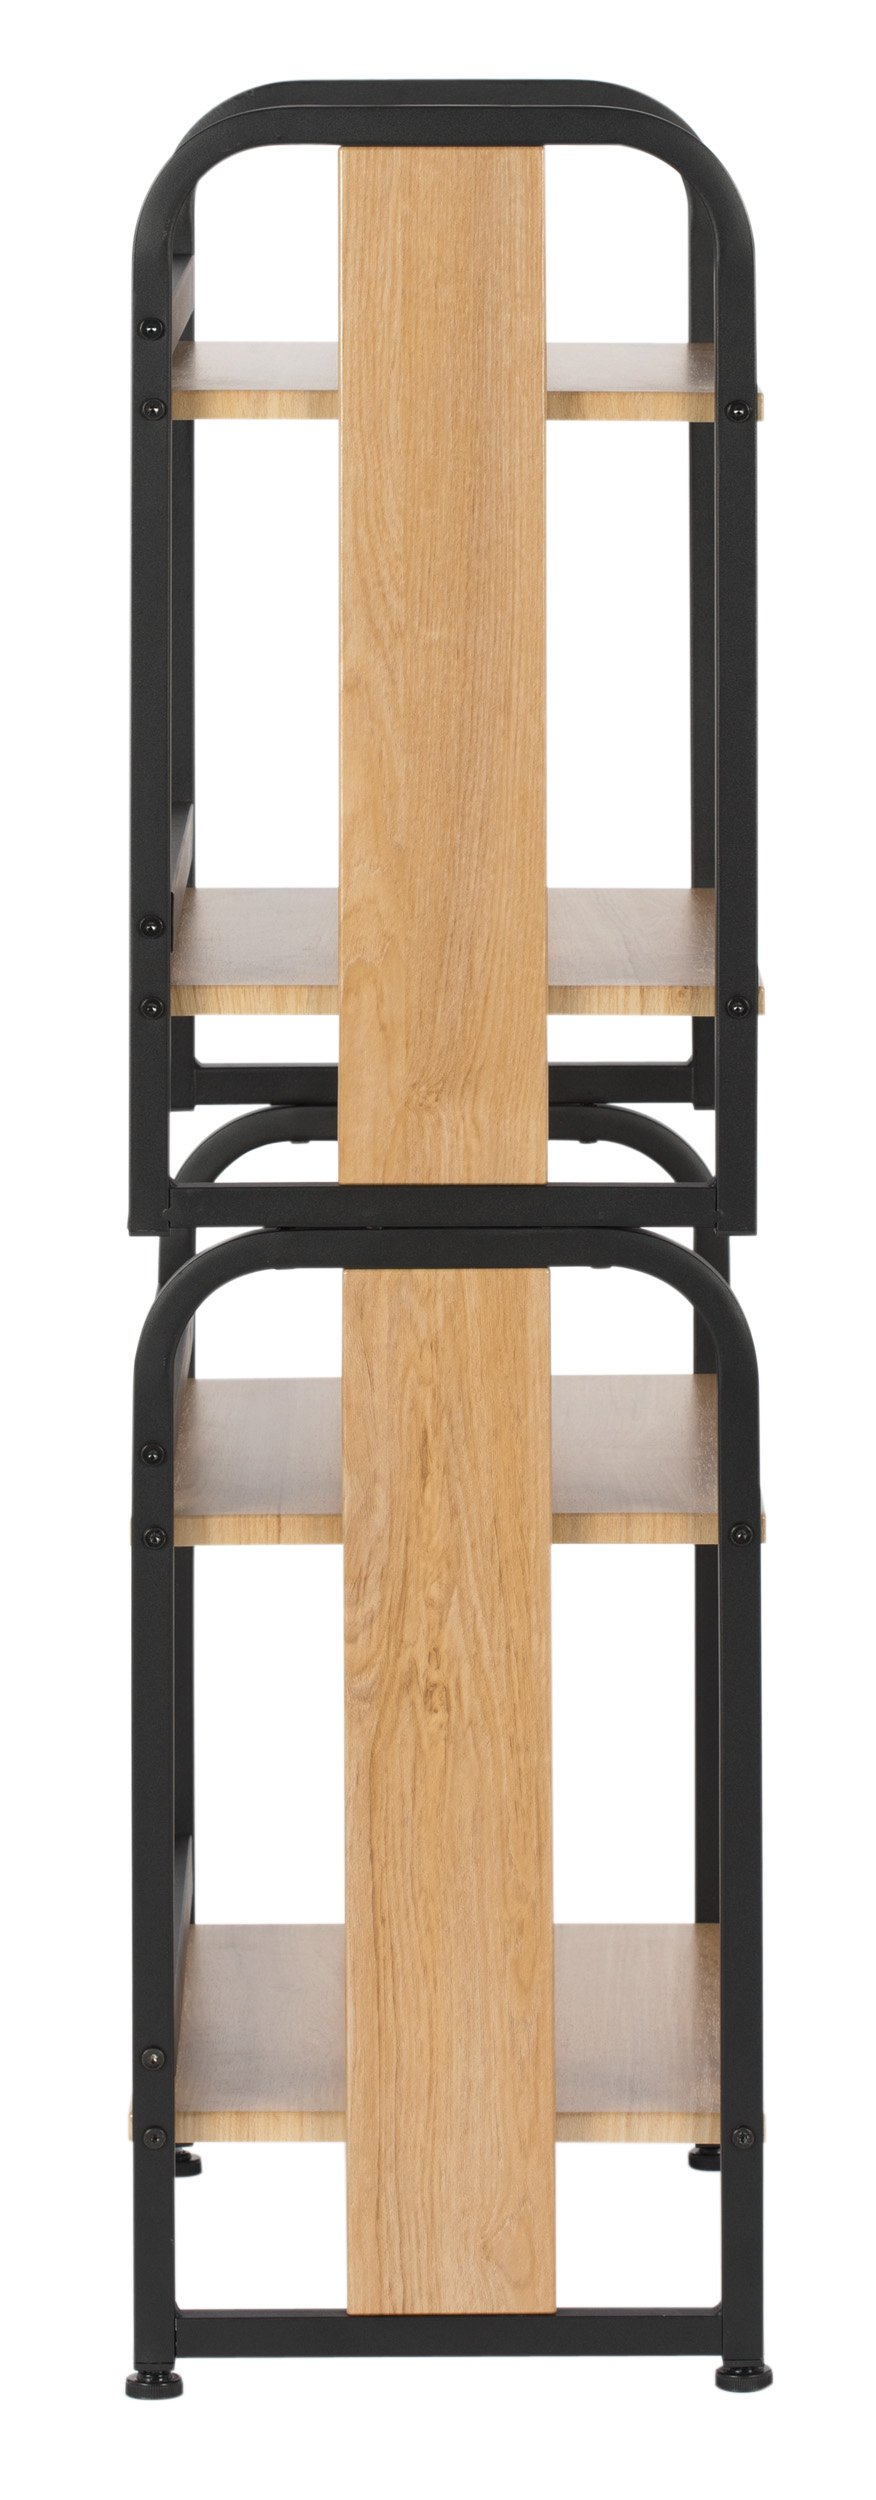 Calico Designs 51249 Modern Ashwood Stackable Bookshelf, Graphite Ashwood by Calico Designs (Image #7)